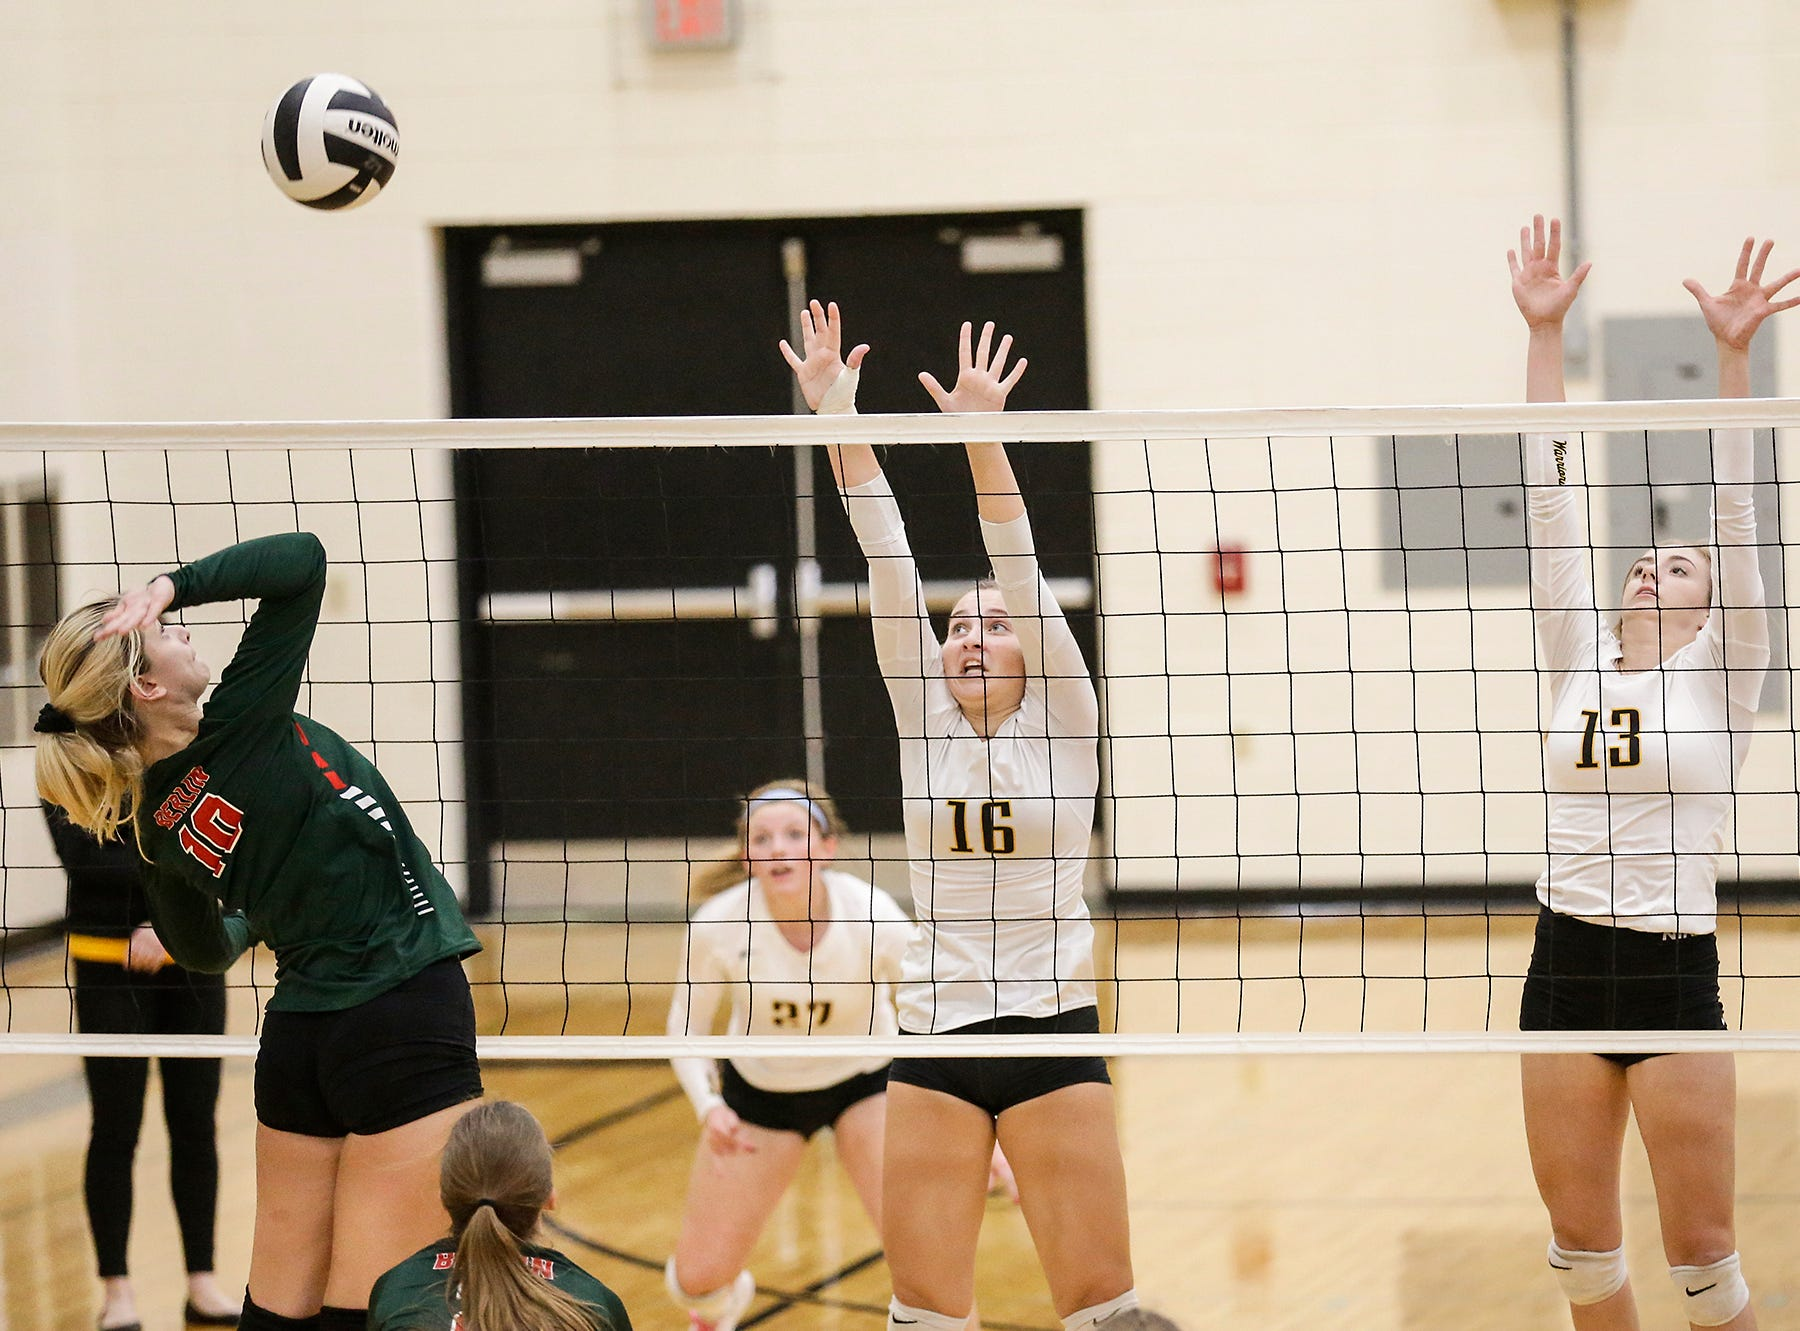 Waupun High School volleyball's Ruby Flegner and McKenna Cunningham go up to block a shot from Berlin High School's Alysha Pischke during their WIAA regional quarter-final playoff game Tuesday, Oct. 16, 2018, in Waupun.